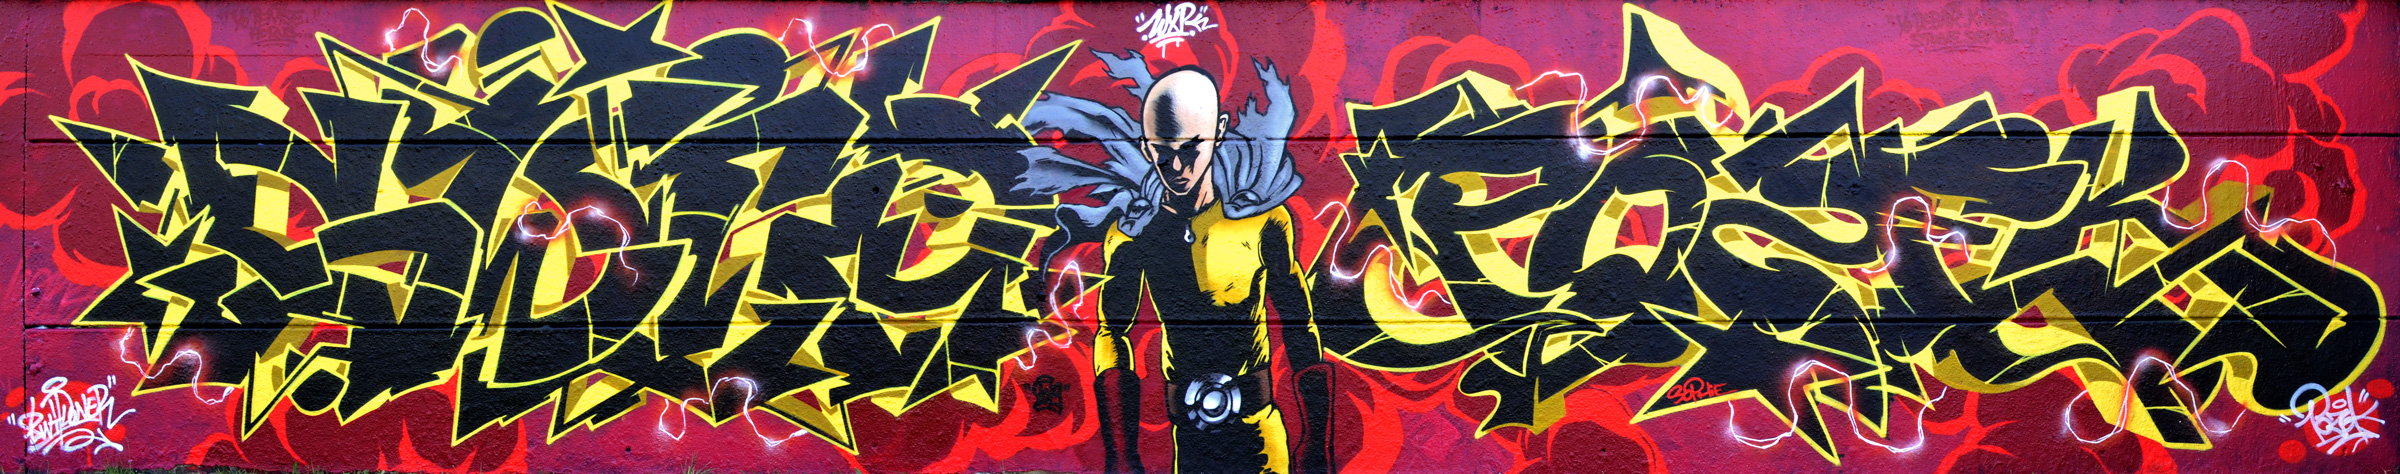 Graffiti One Punch Man